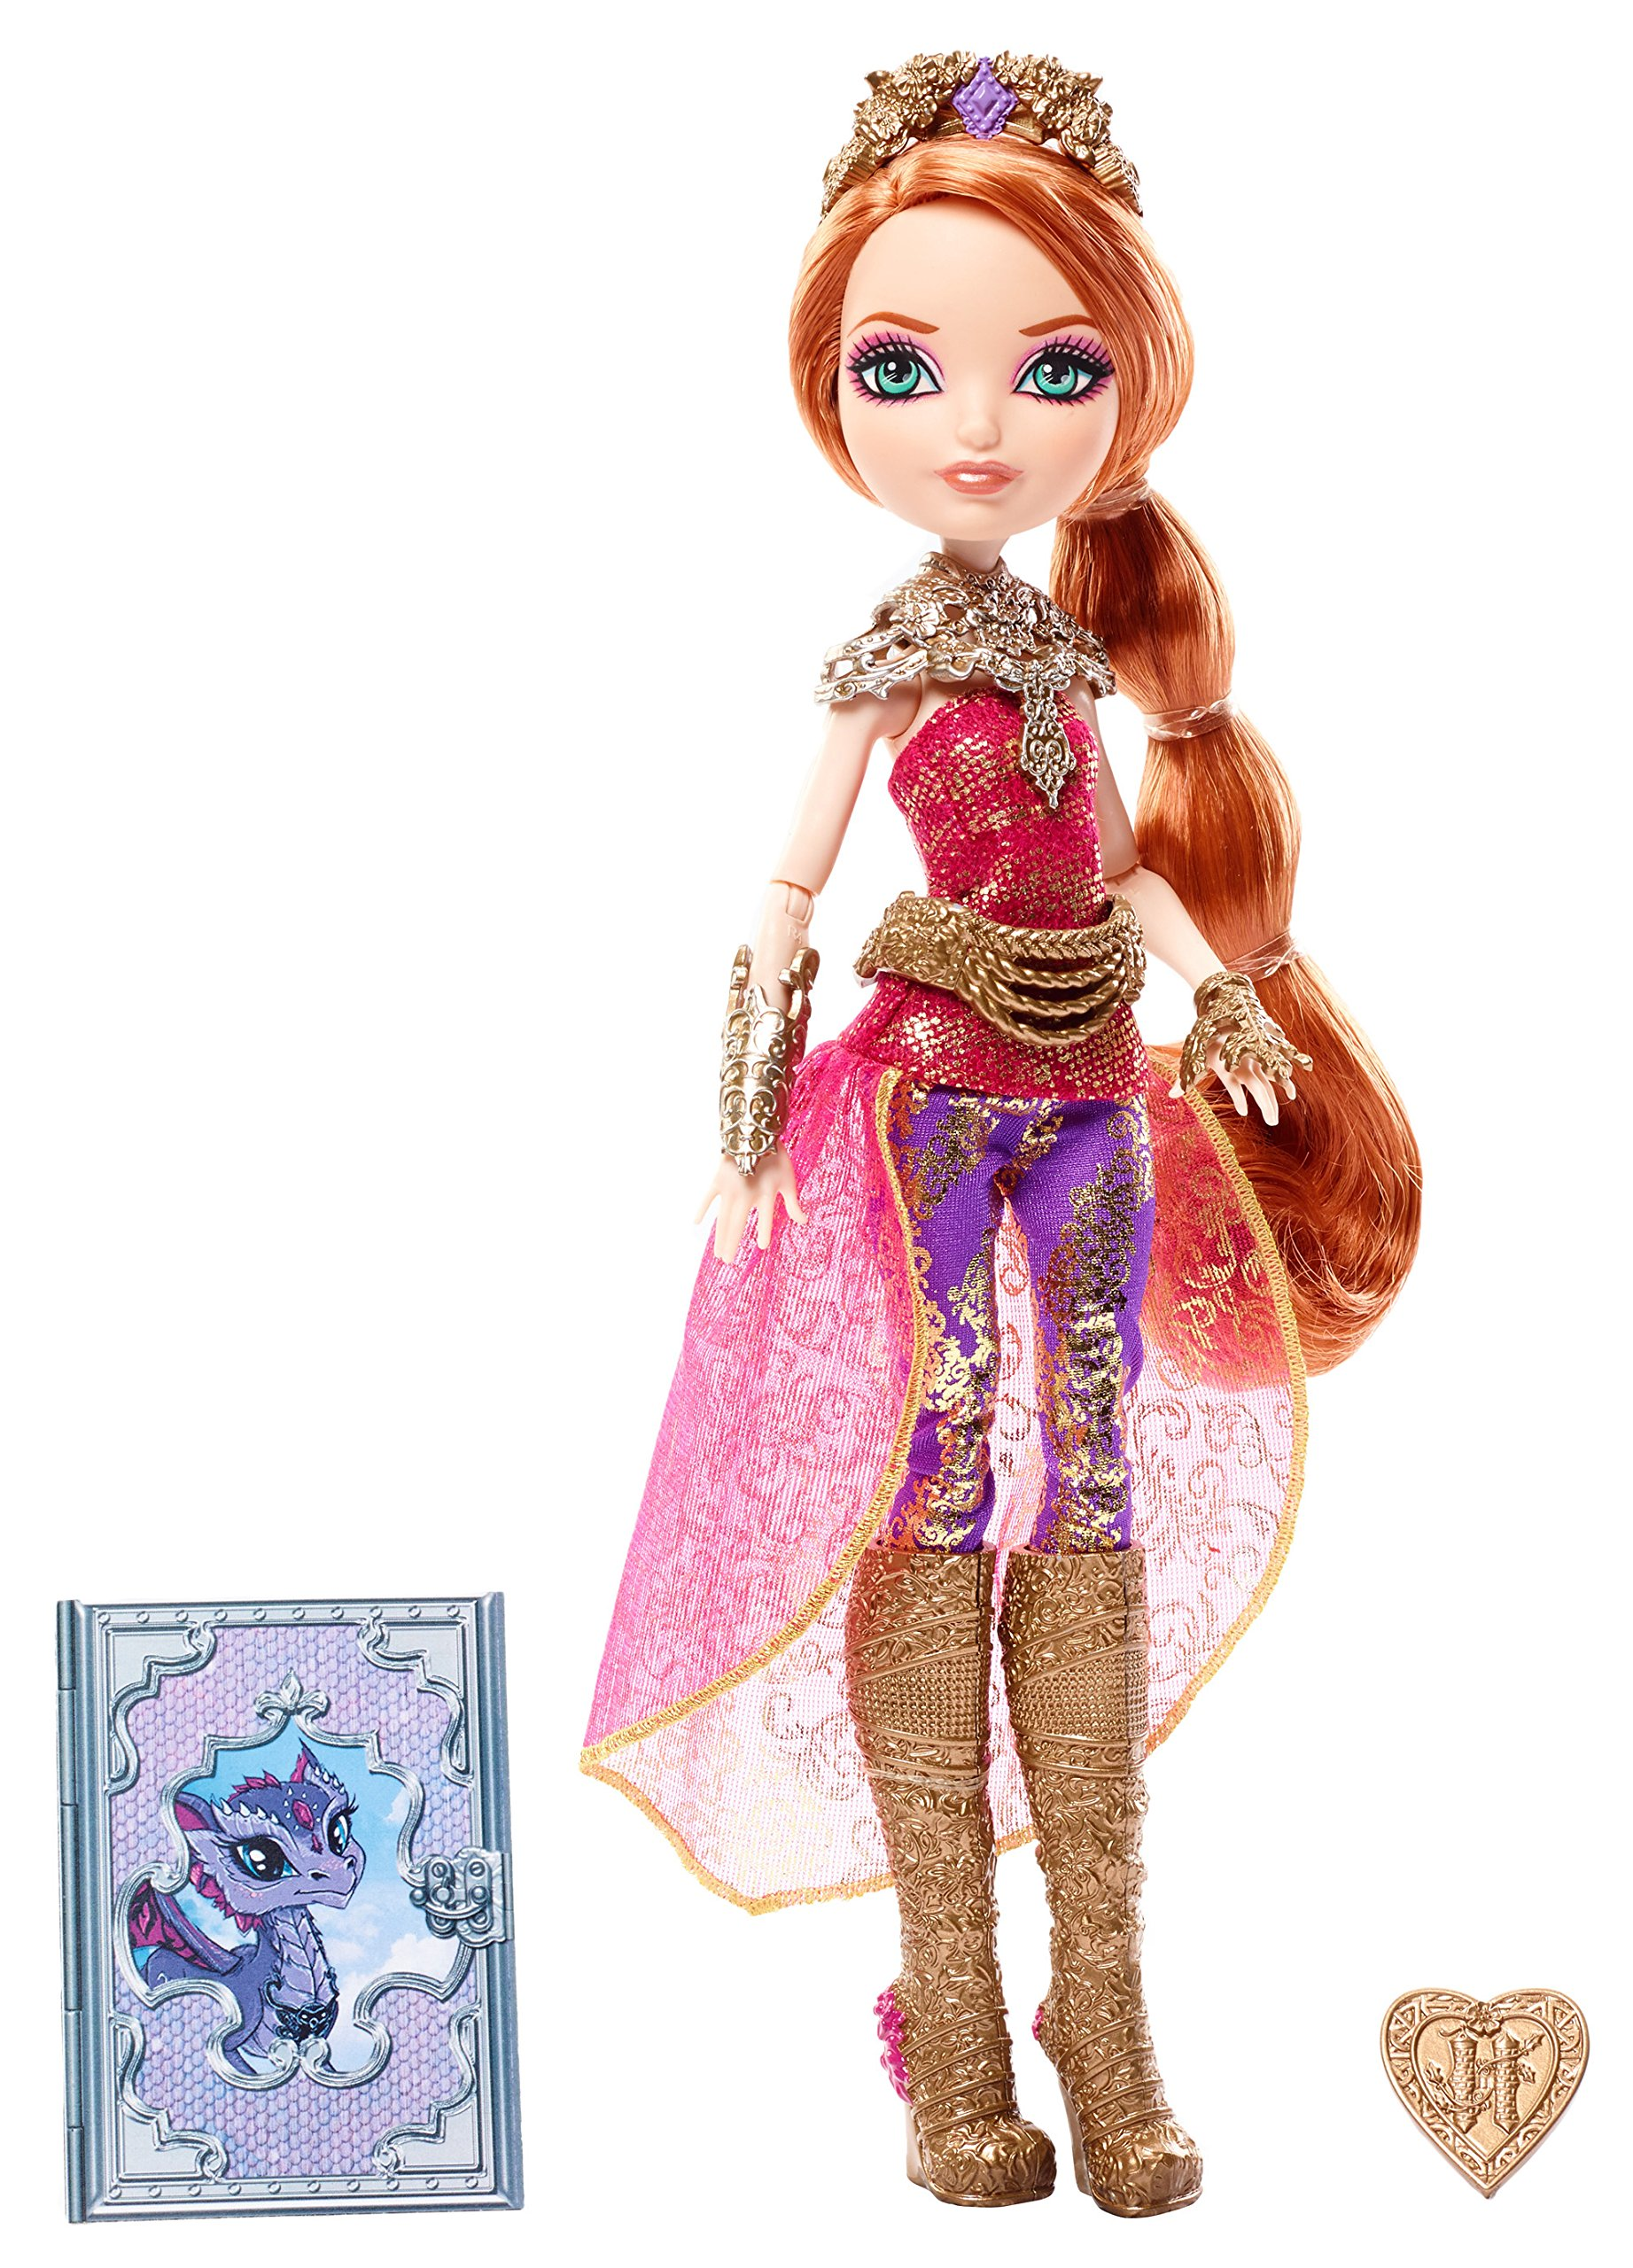 Cheap games star doll find games star doll deals on line at alibaba get quotations ever after high dragon games holly ohair doll gumiabroncs Image collections